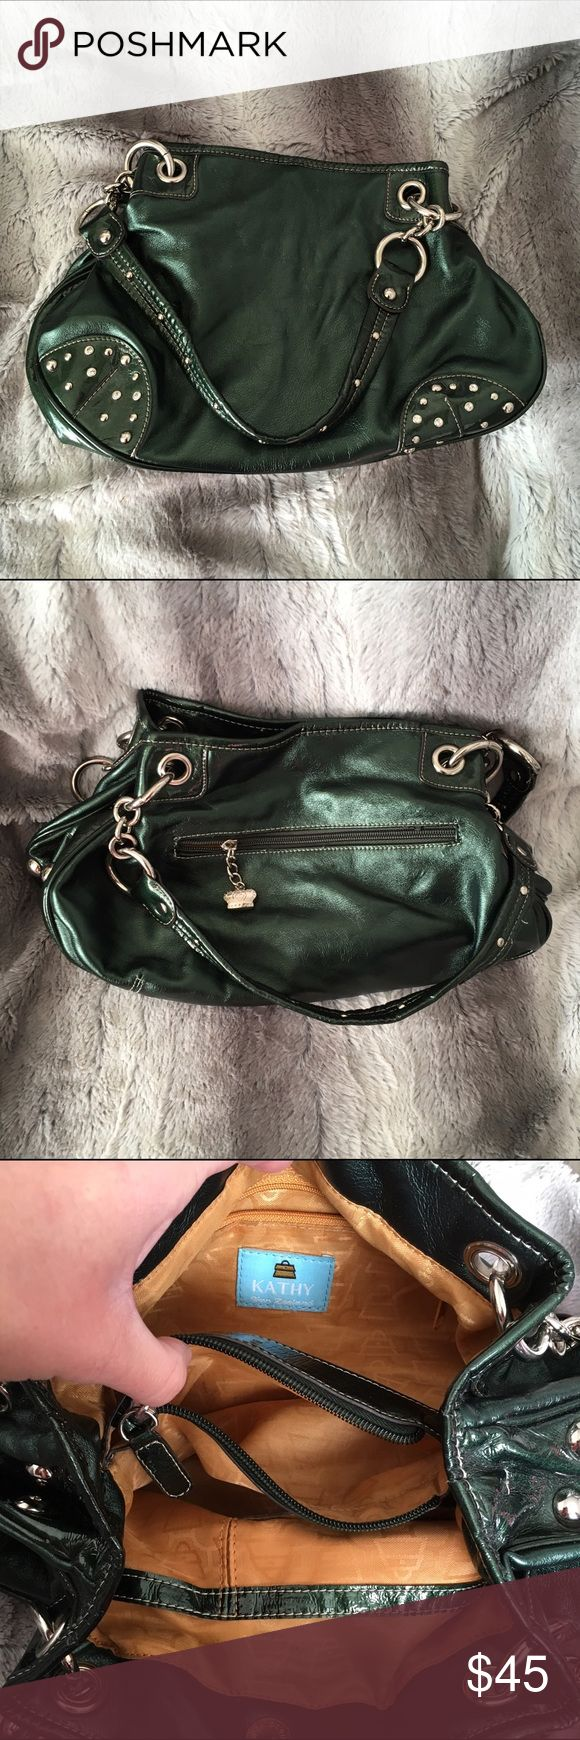 Emerald green Kathy Van Zeeland purse Amazing Emerald green Kathy Van Zeeland purse!! Great colour! Awesome style!! Has three pockets~ the center one has a zipper, the others have snaps! Good gently used condition! Some light wear here and there. Trying to downsize my purse collection!! Kathy Van Zeeland Bags